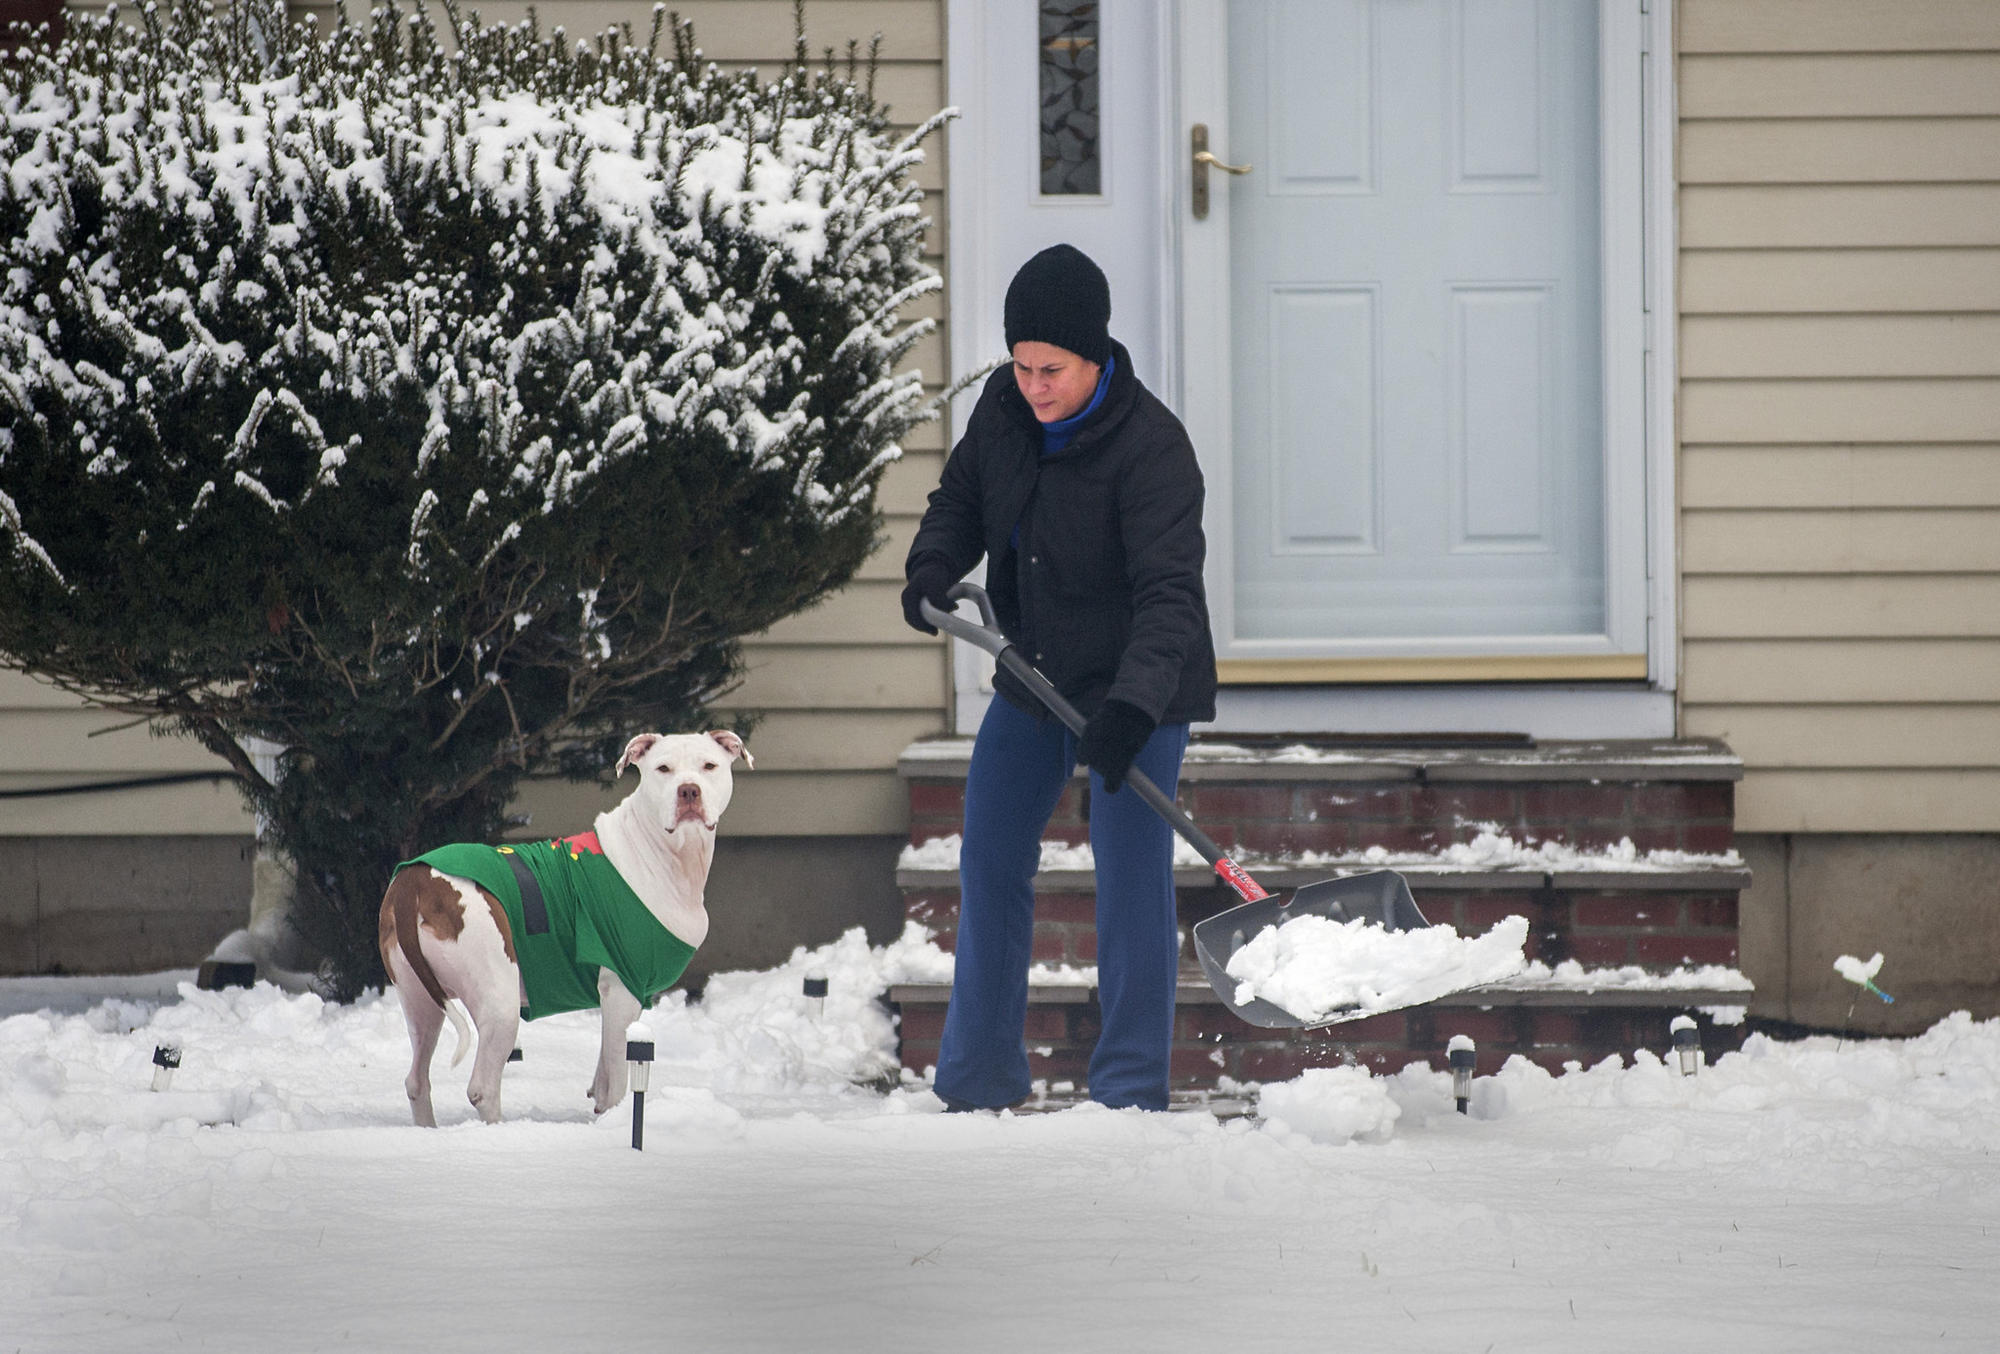 Winter Storm Warning For Hartford County Until 1 p.m., 3-5 Inches of Snow Expected